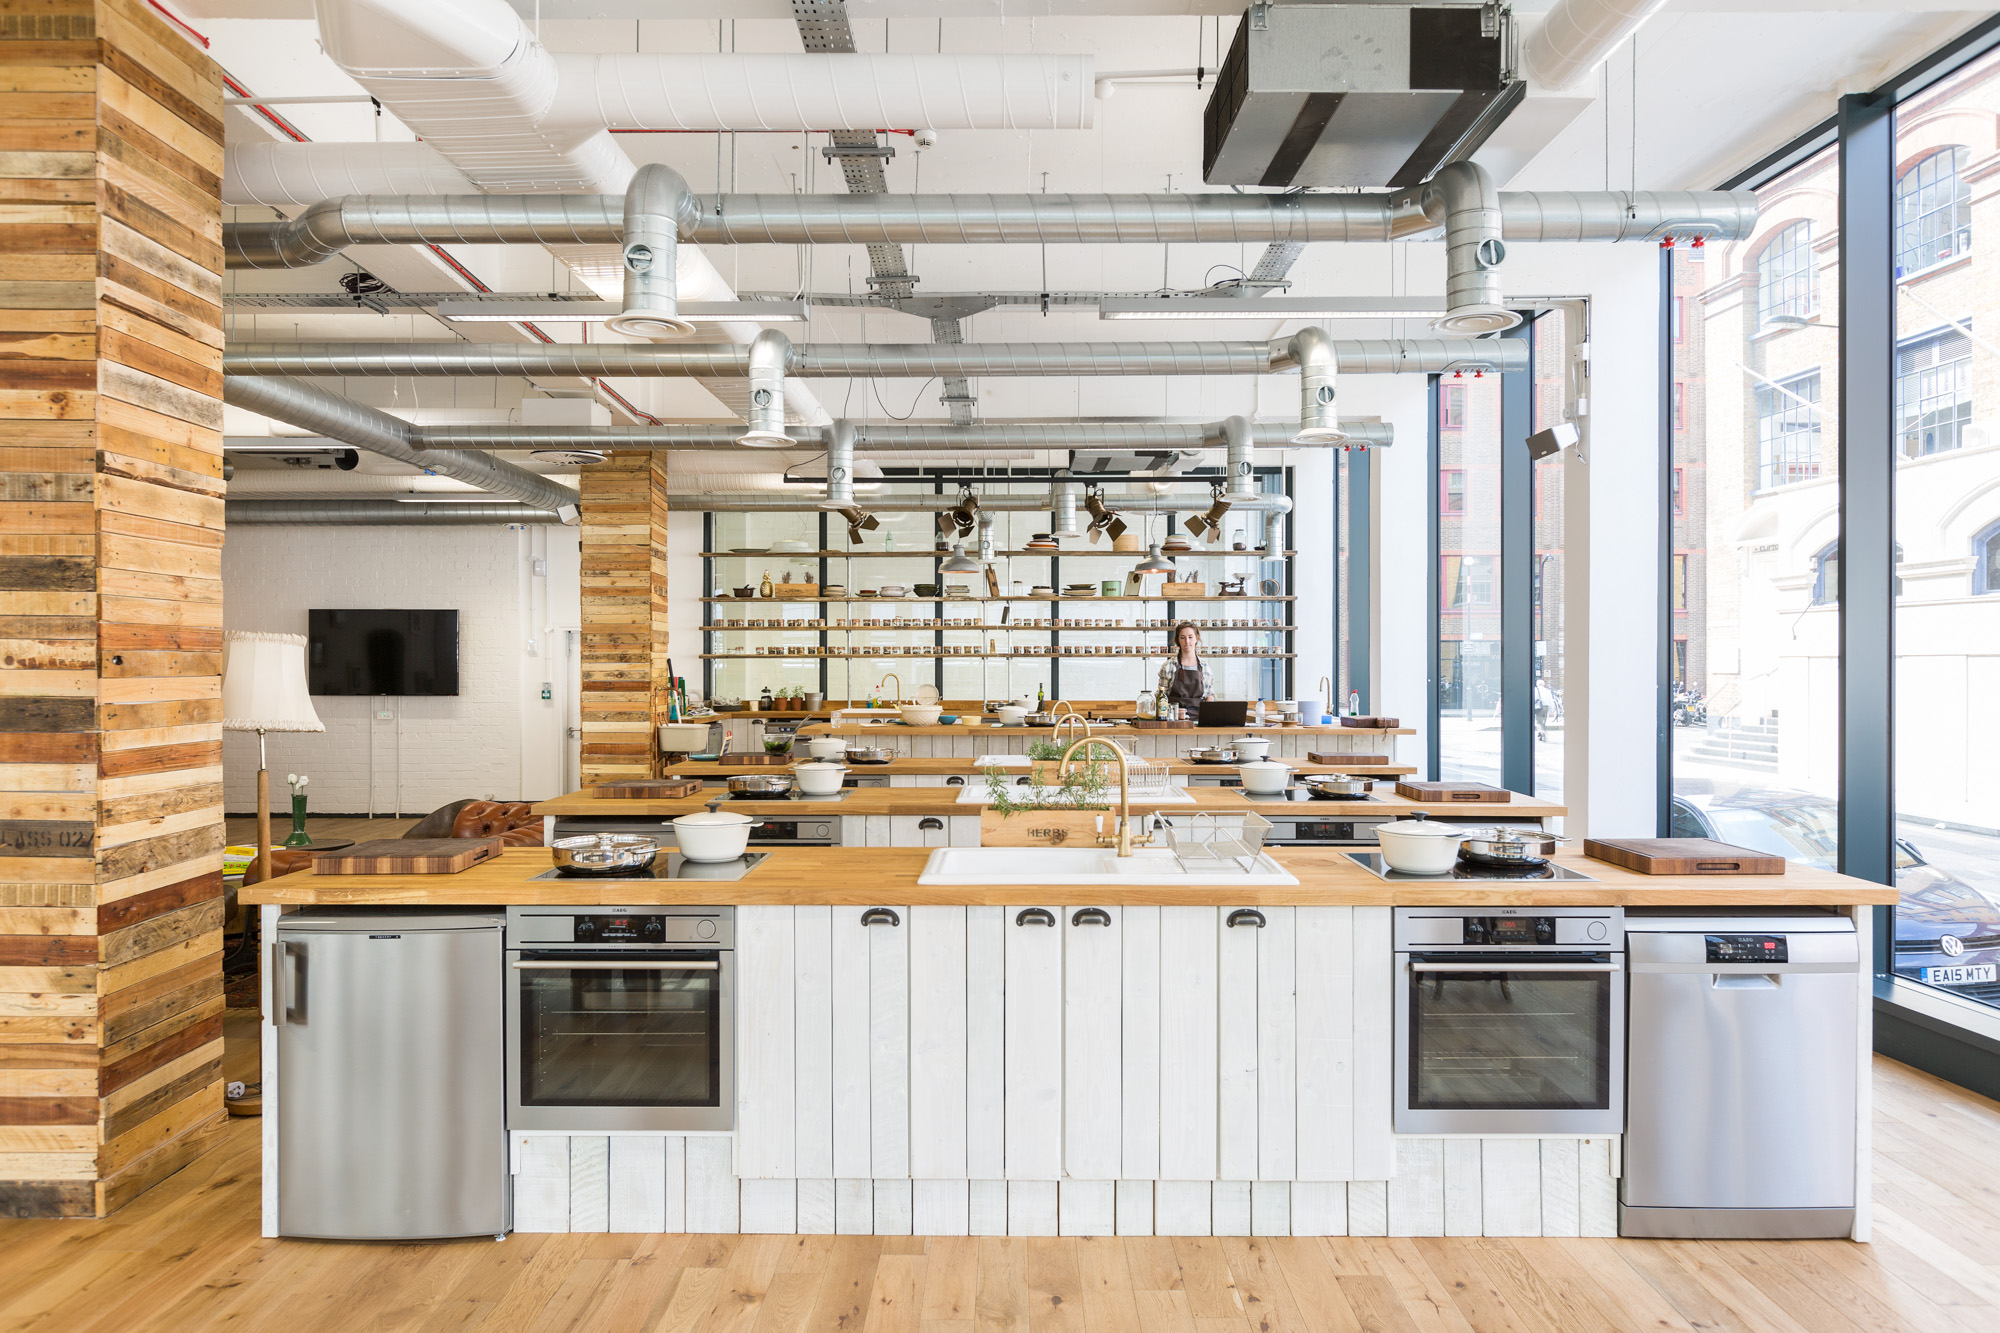 Demonstration Kitchen a look inside hellofresh's cool new london headquarters - officelovin'